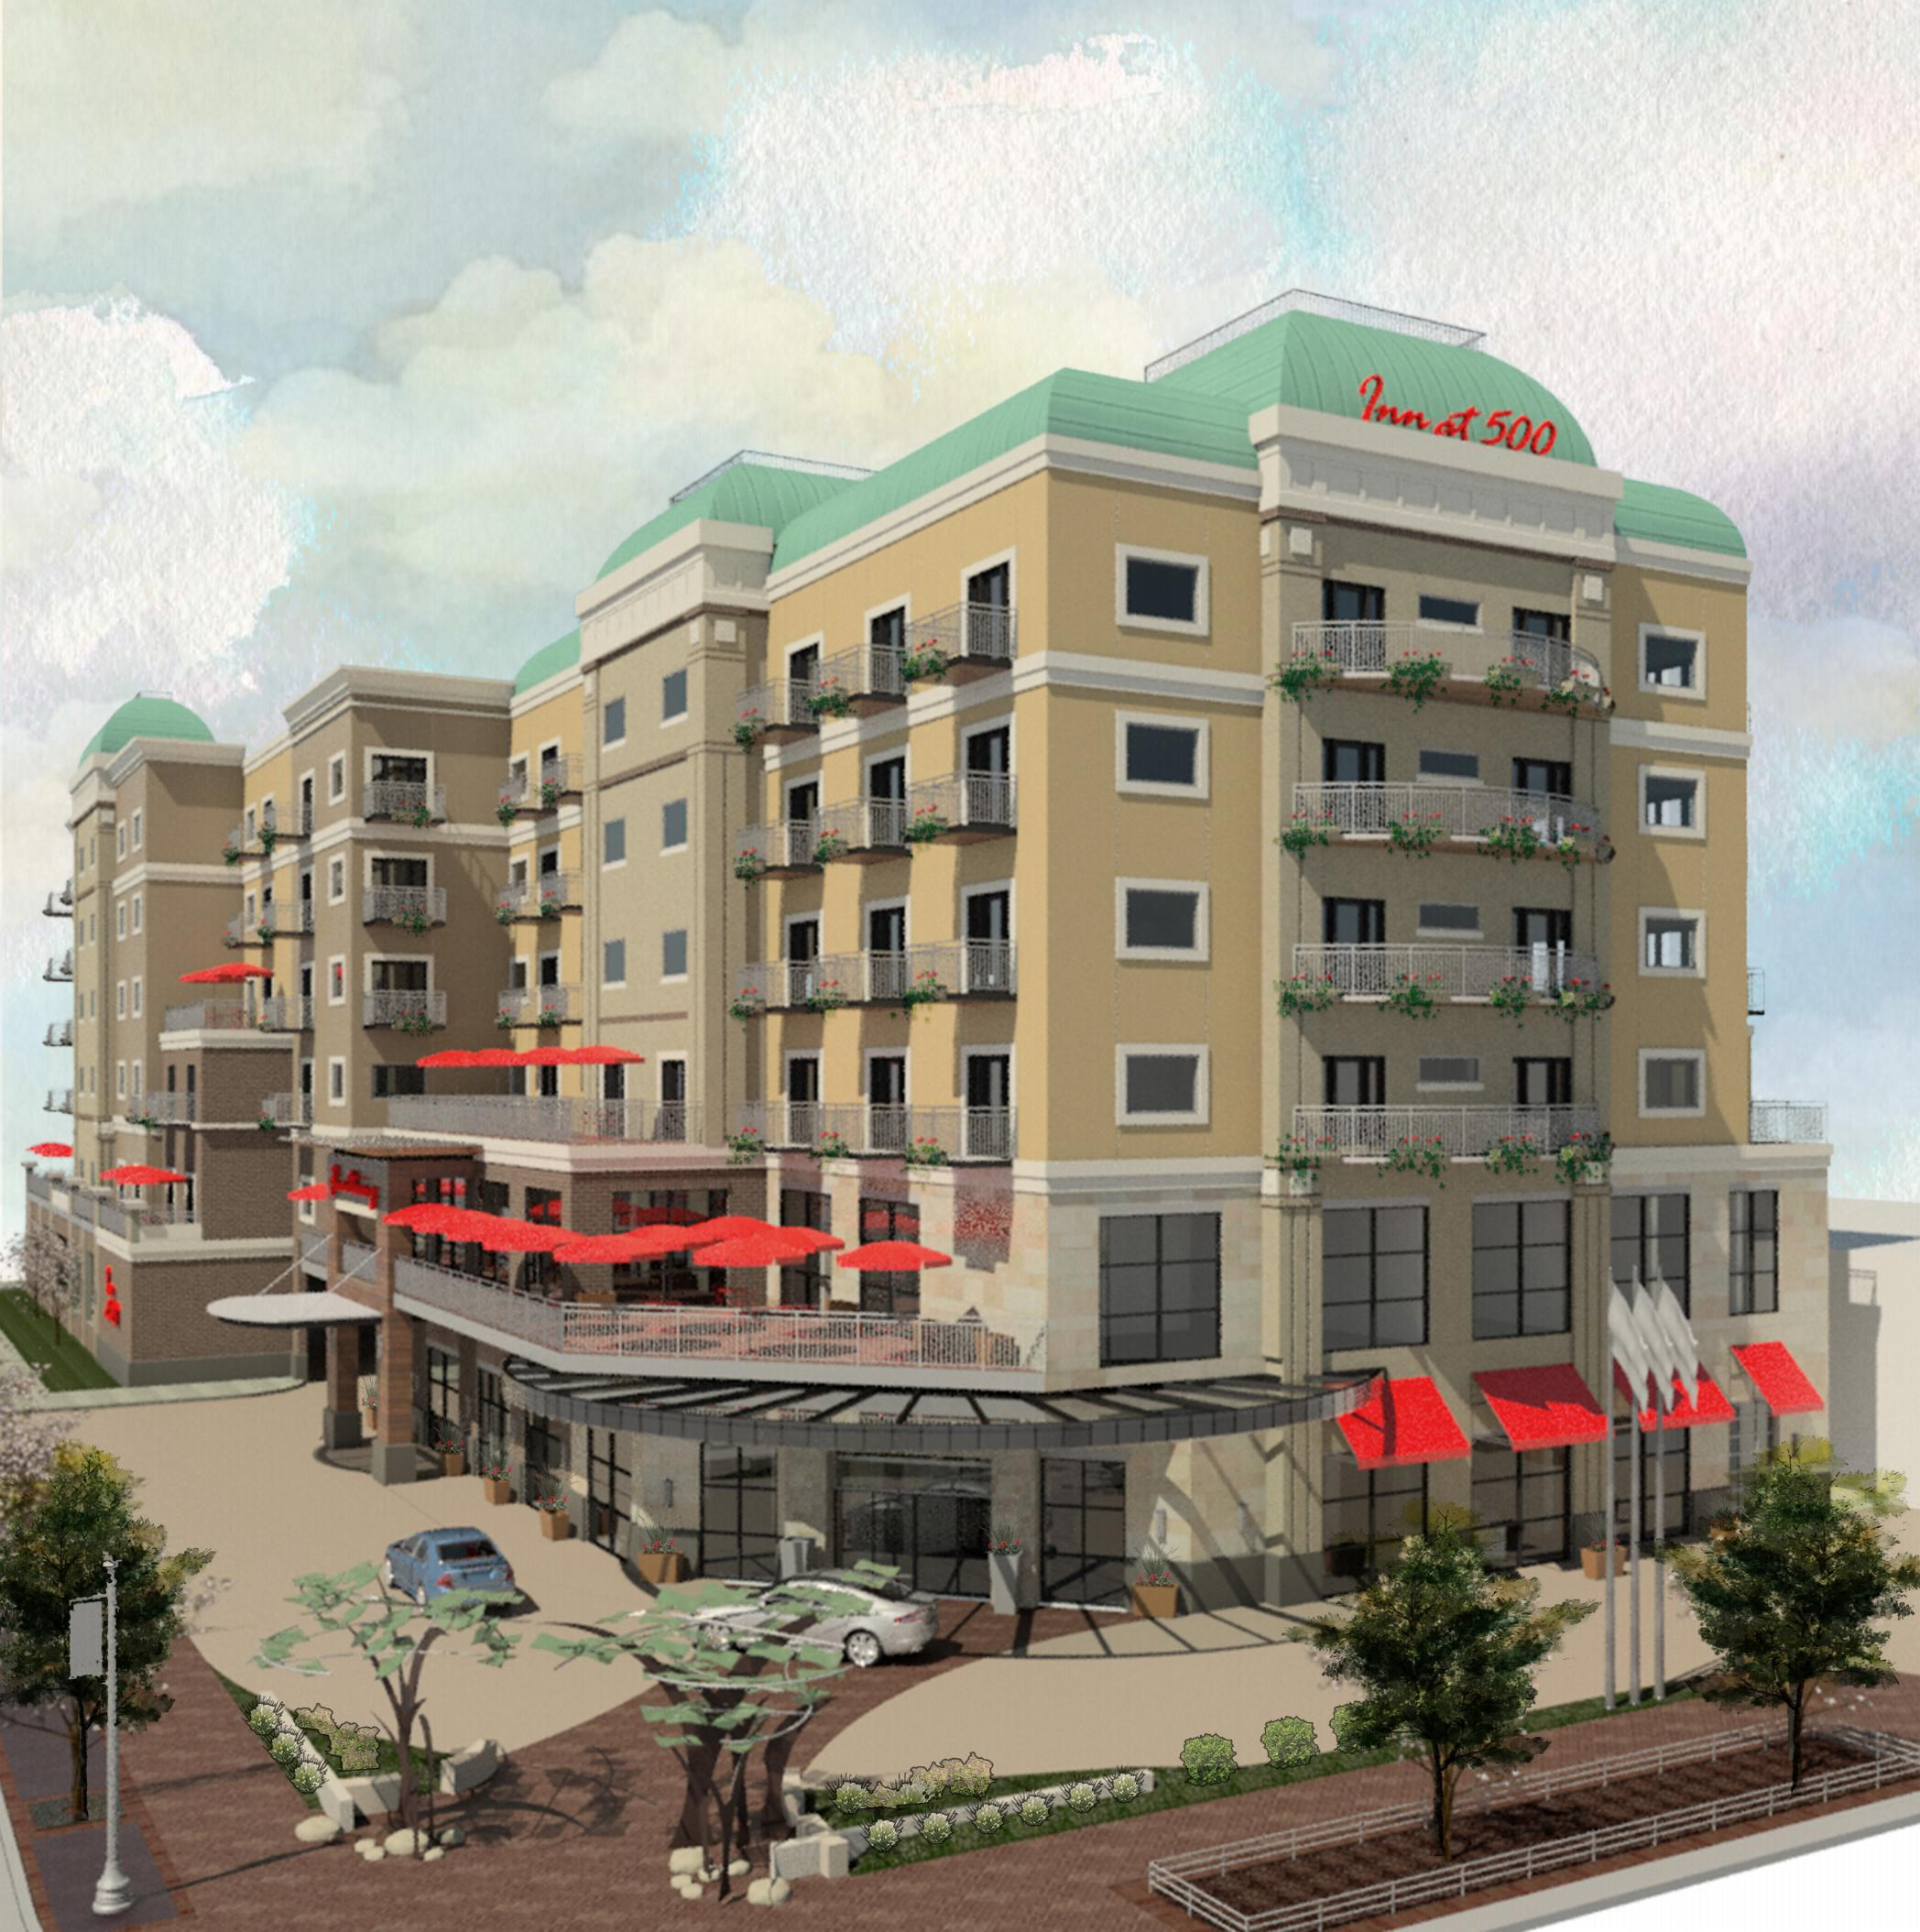 Three New Hotels Under Construction In Downtown Boise